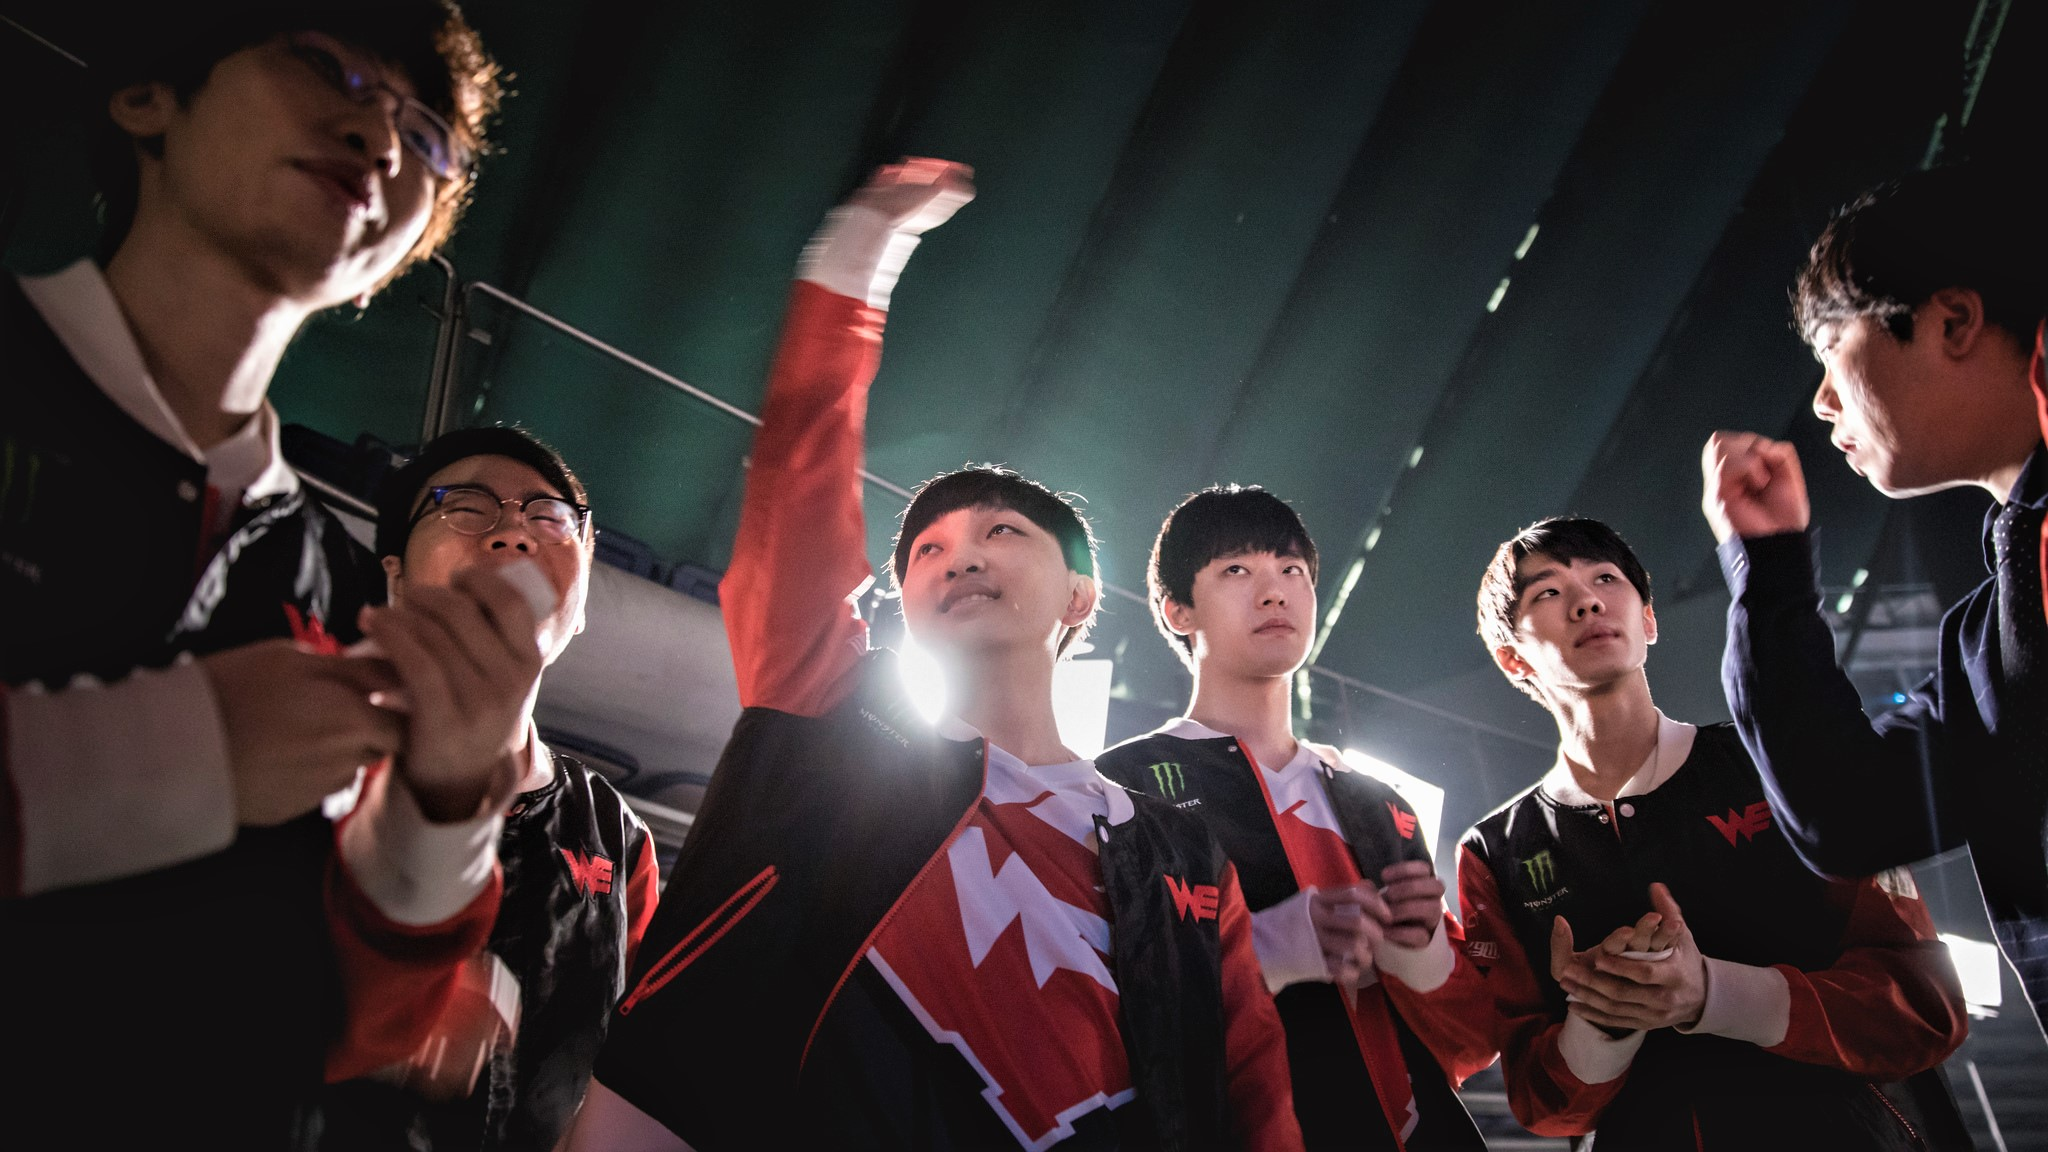 team we rally to eliminate cloud9 and advance to the worlds